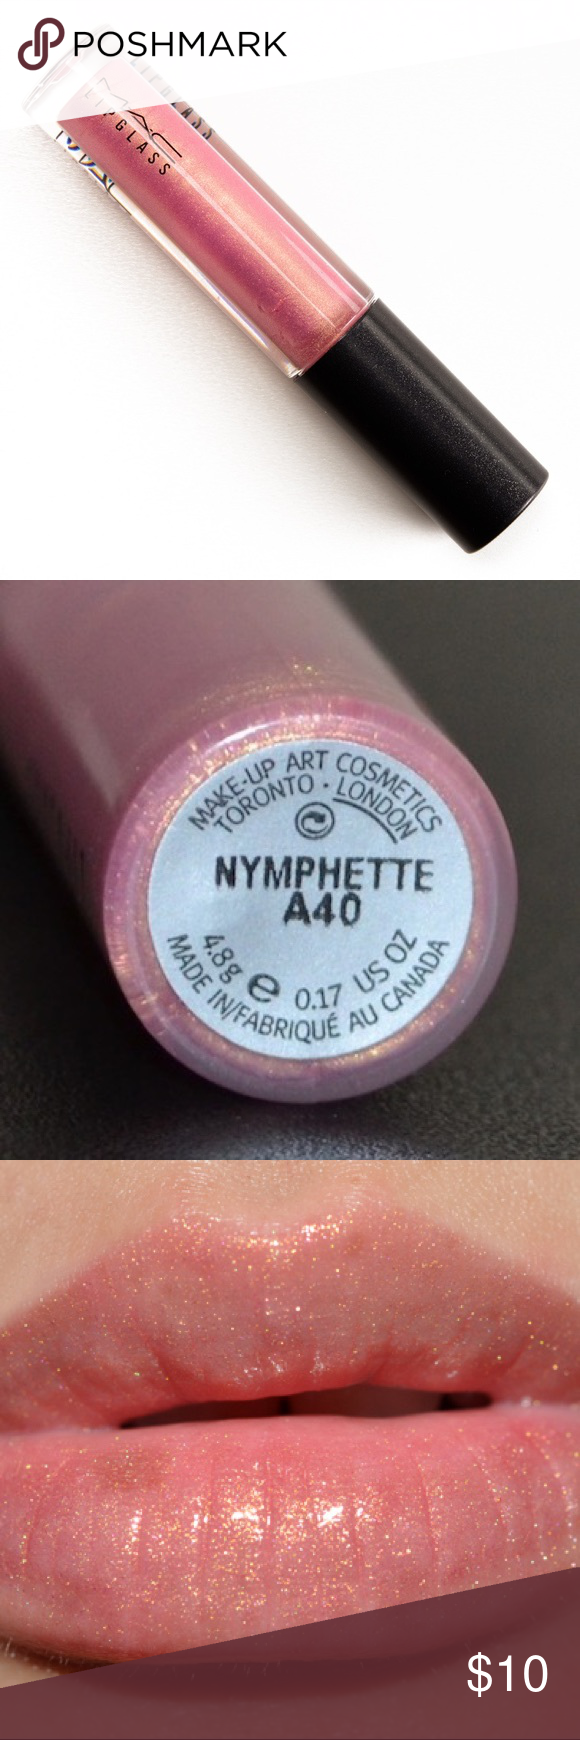 MAC Nymphette Lipglass Review & Swatches